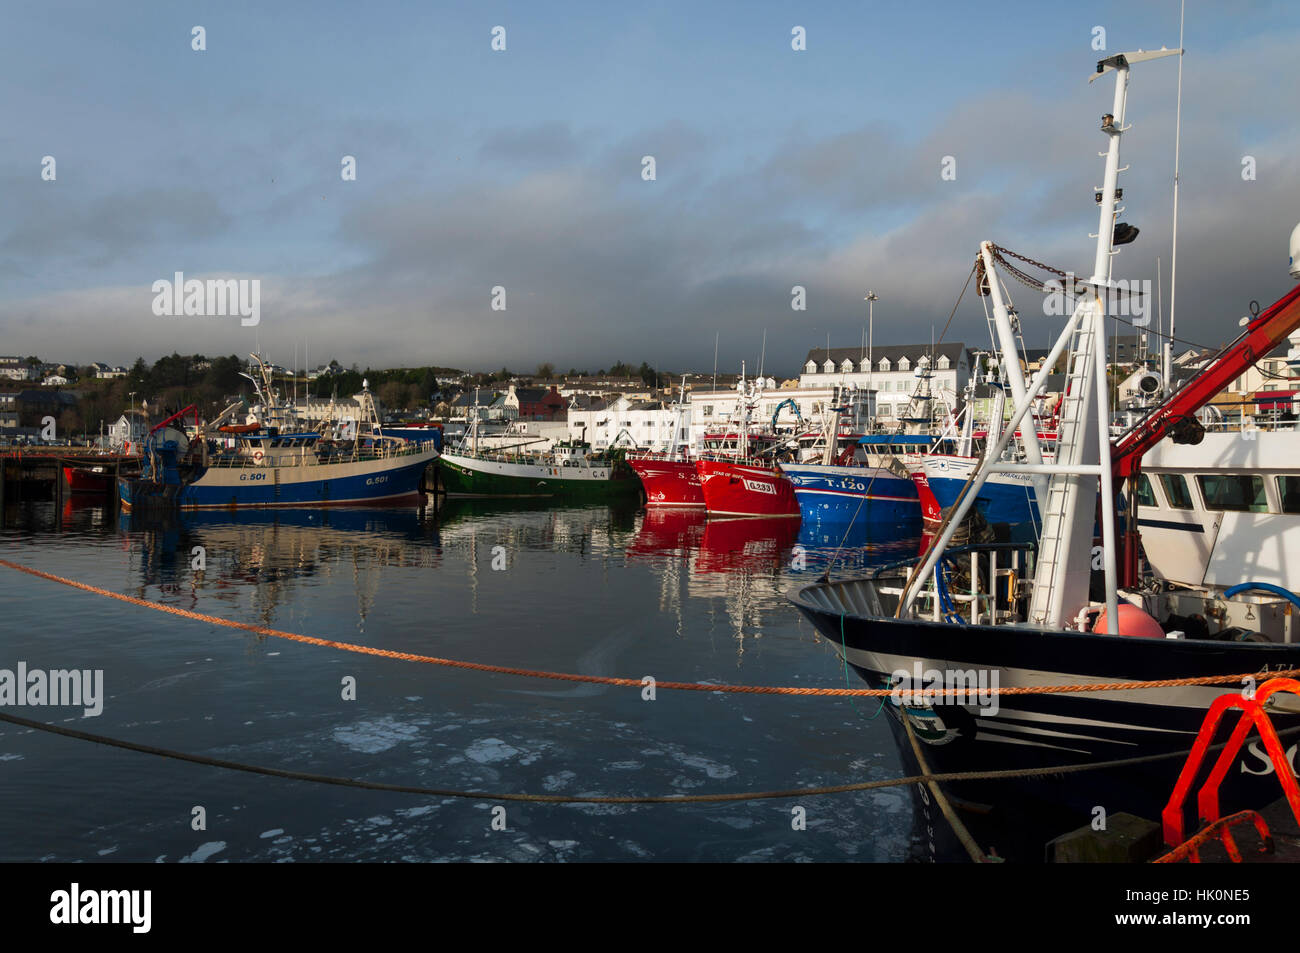 Fishing trawlers and boats in Killybegs Harbour, County Donegal, Ireland - Stock Image